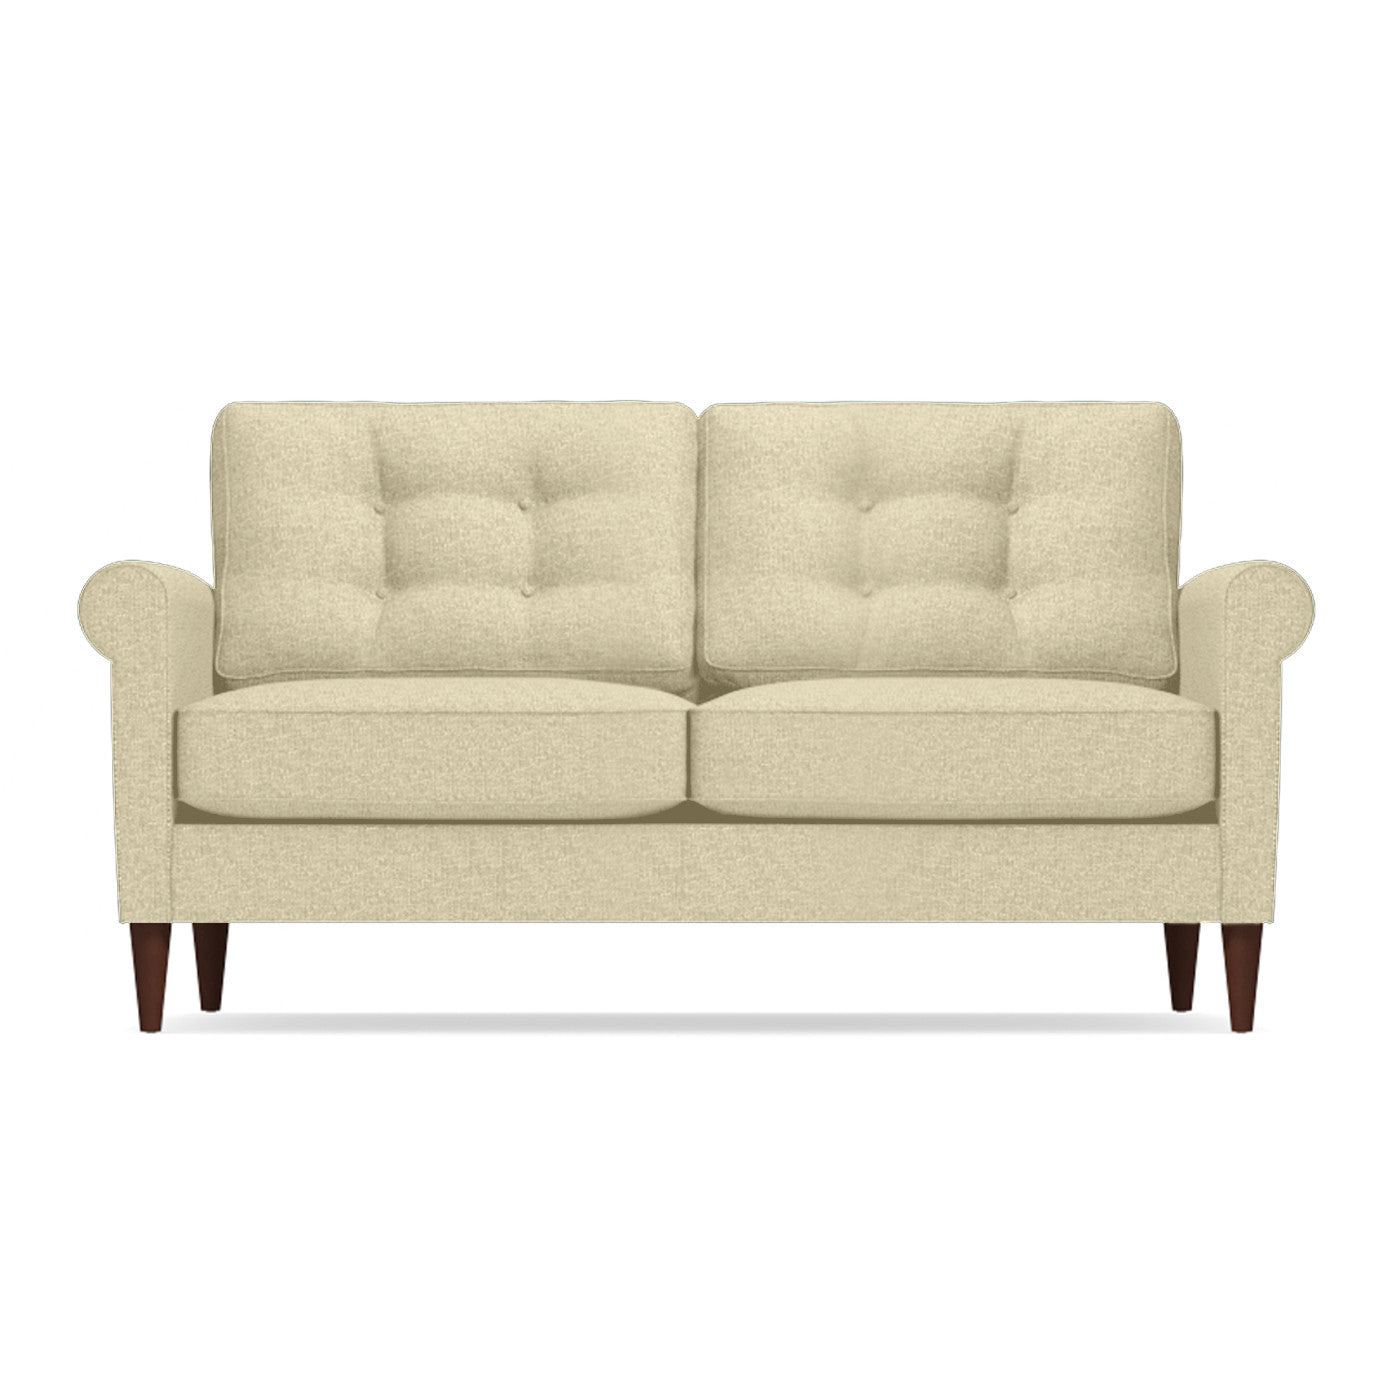 Moorland Eco Friendly Apartment Size Sofa